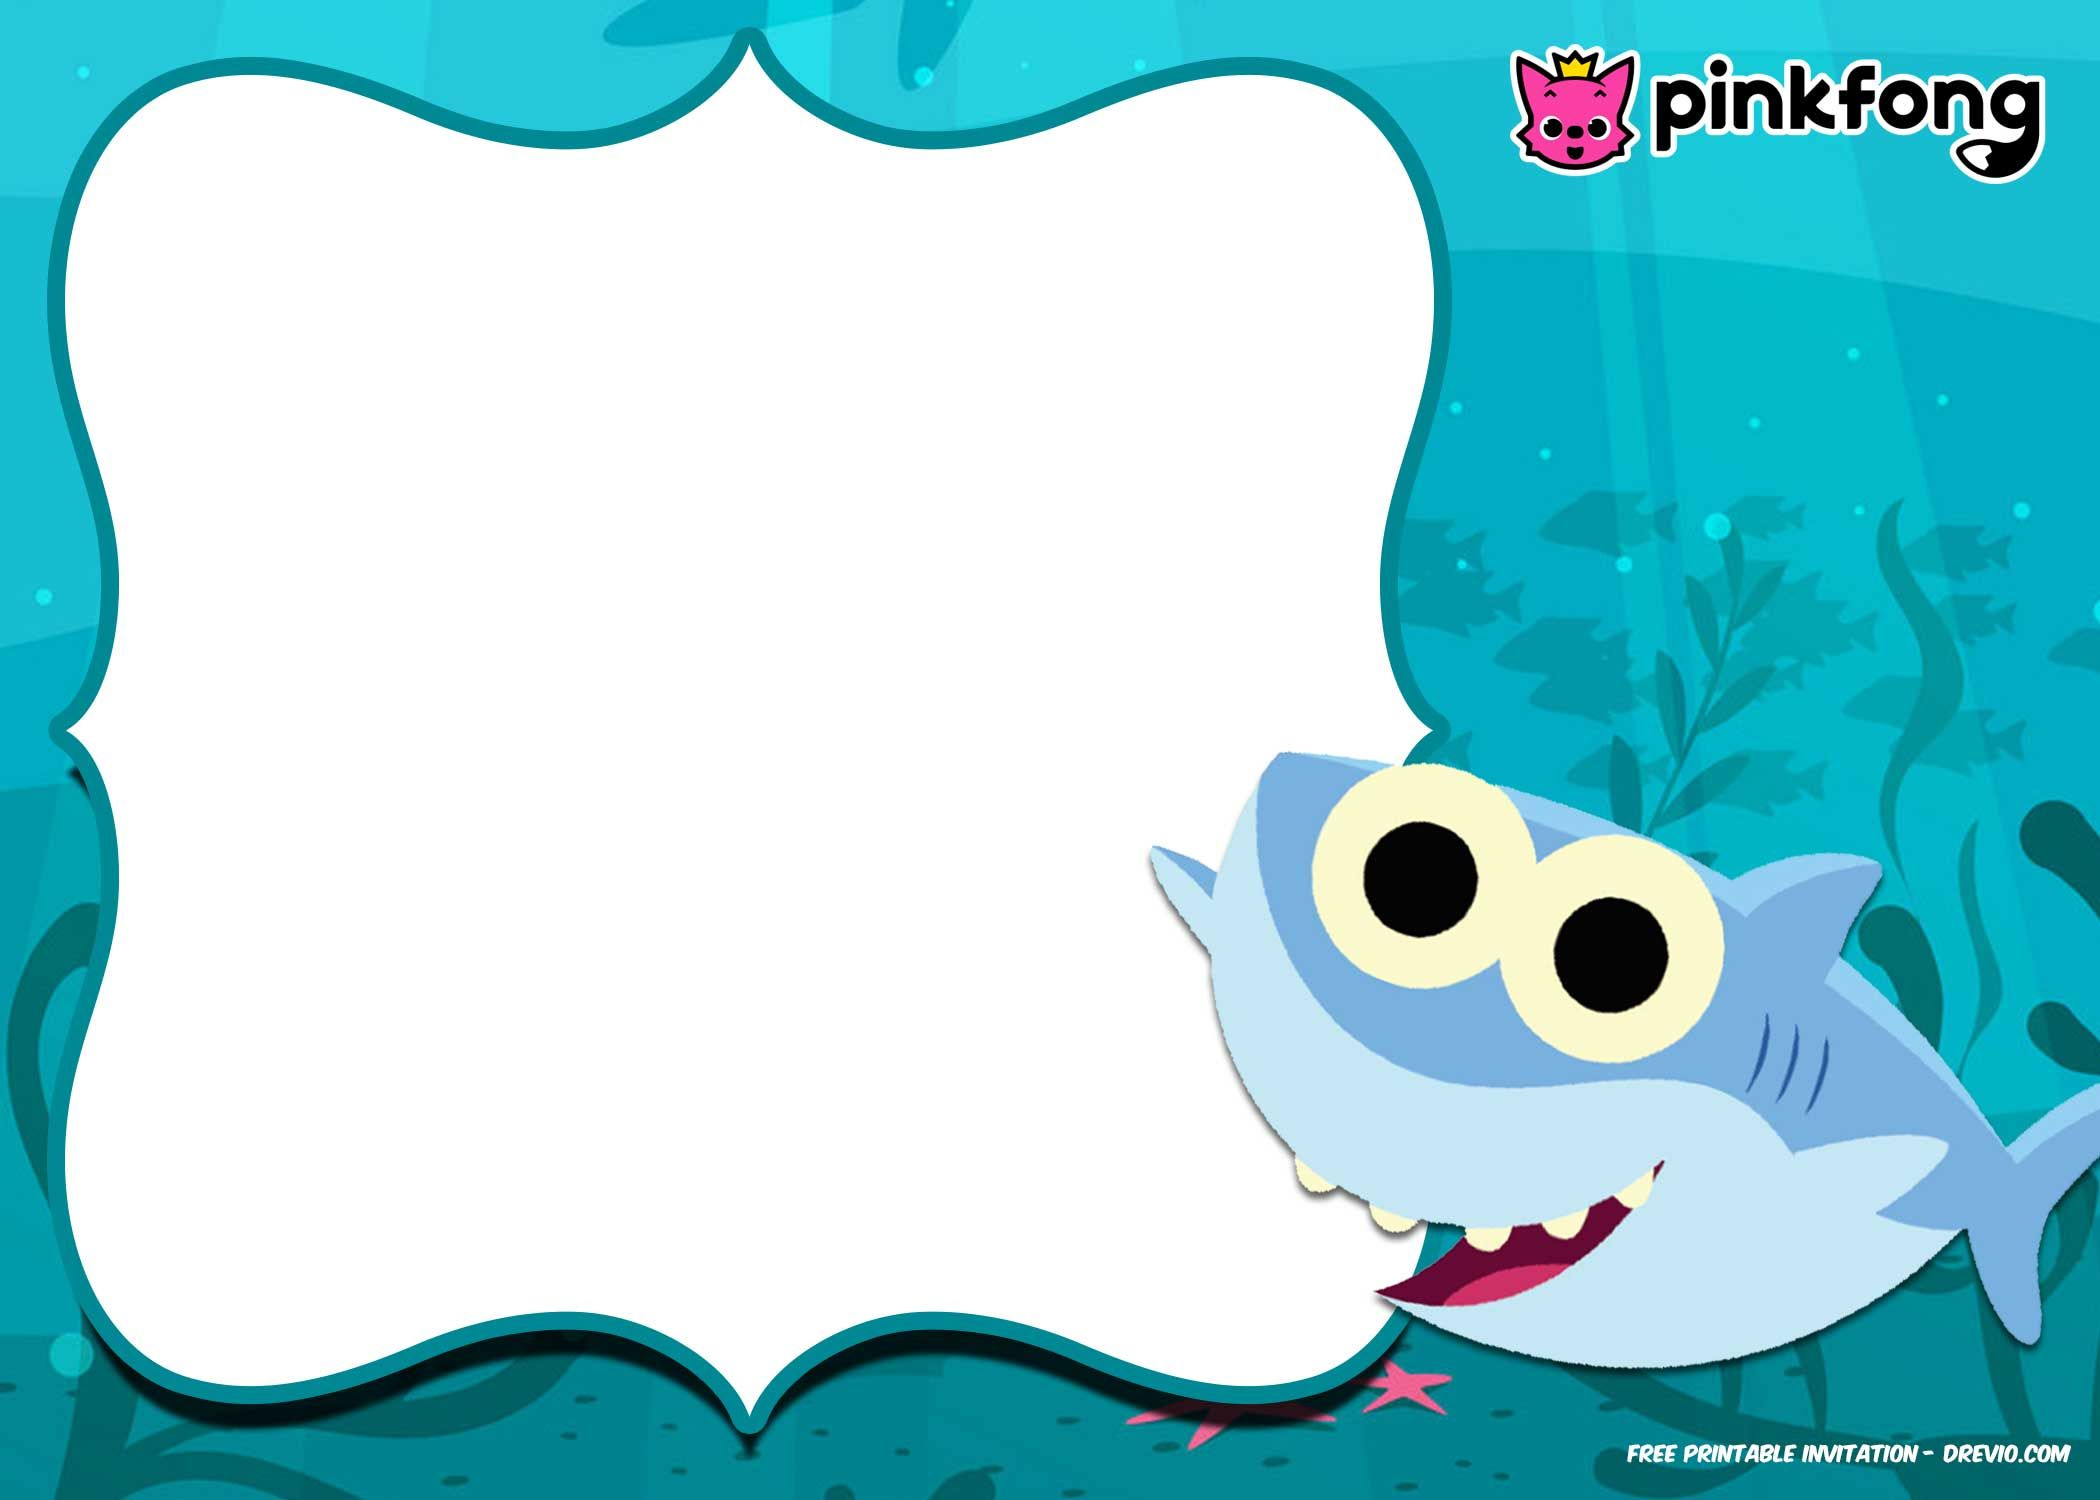 photograph about Free Printable Birthday Invitation Templates named No cost Printable Child Shark Pinkfong Birthday Invitation